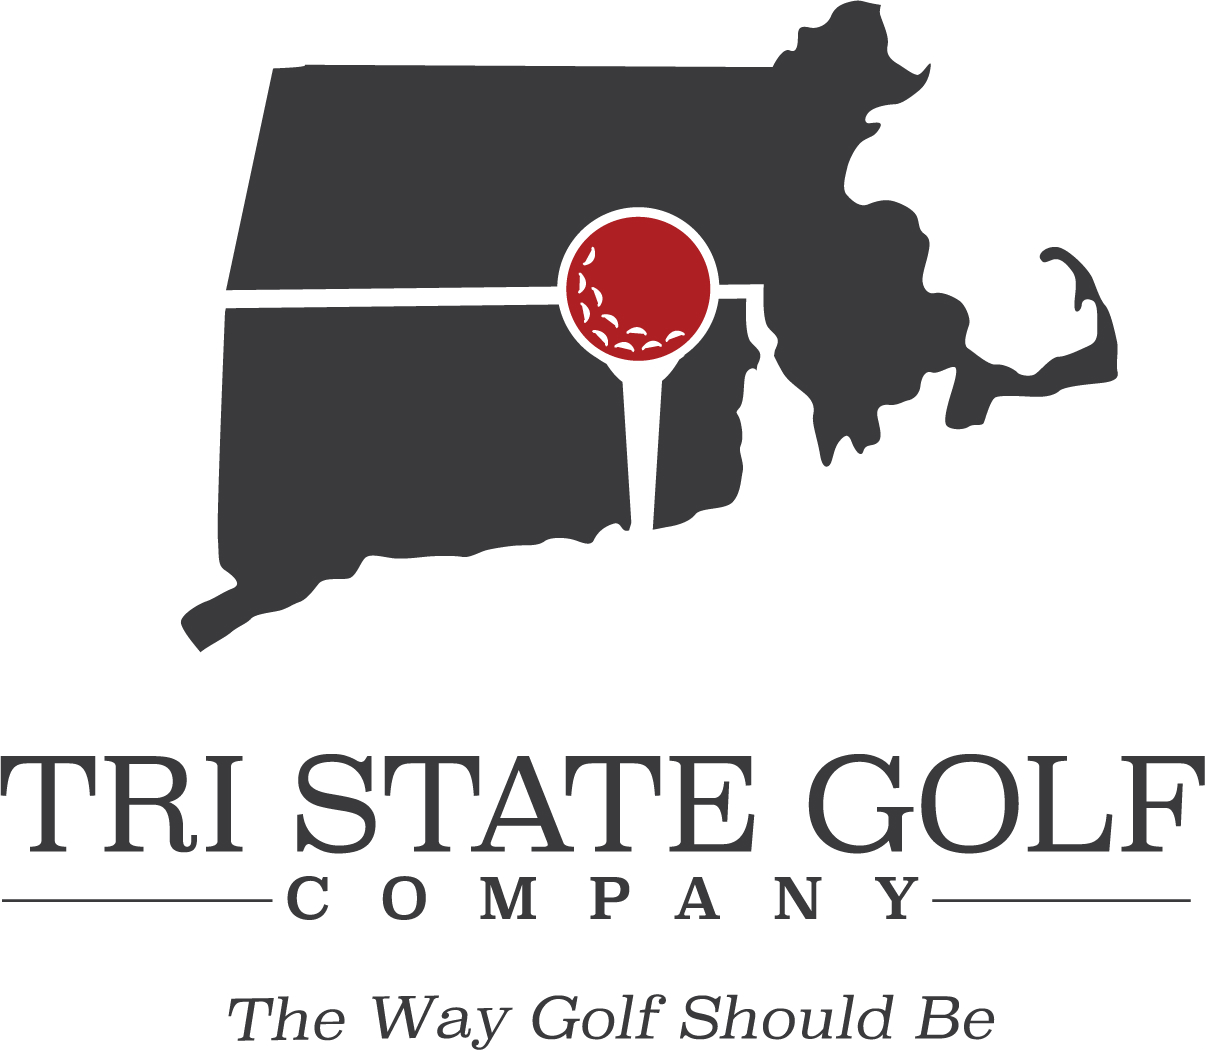 Managed by Tri State Golf Company